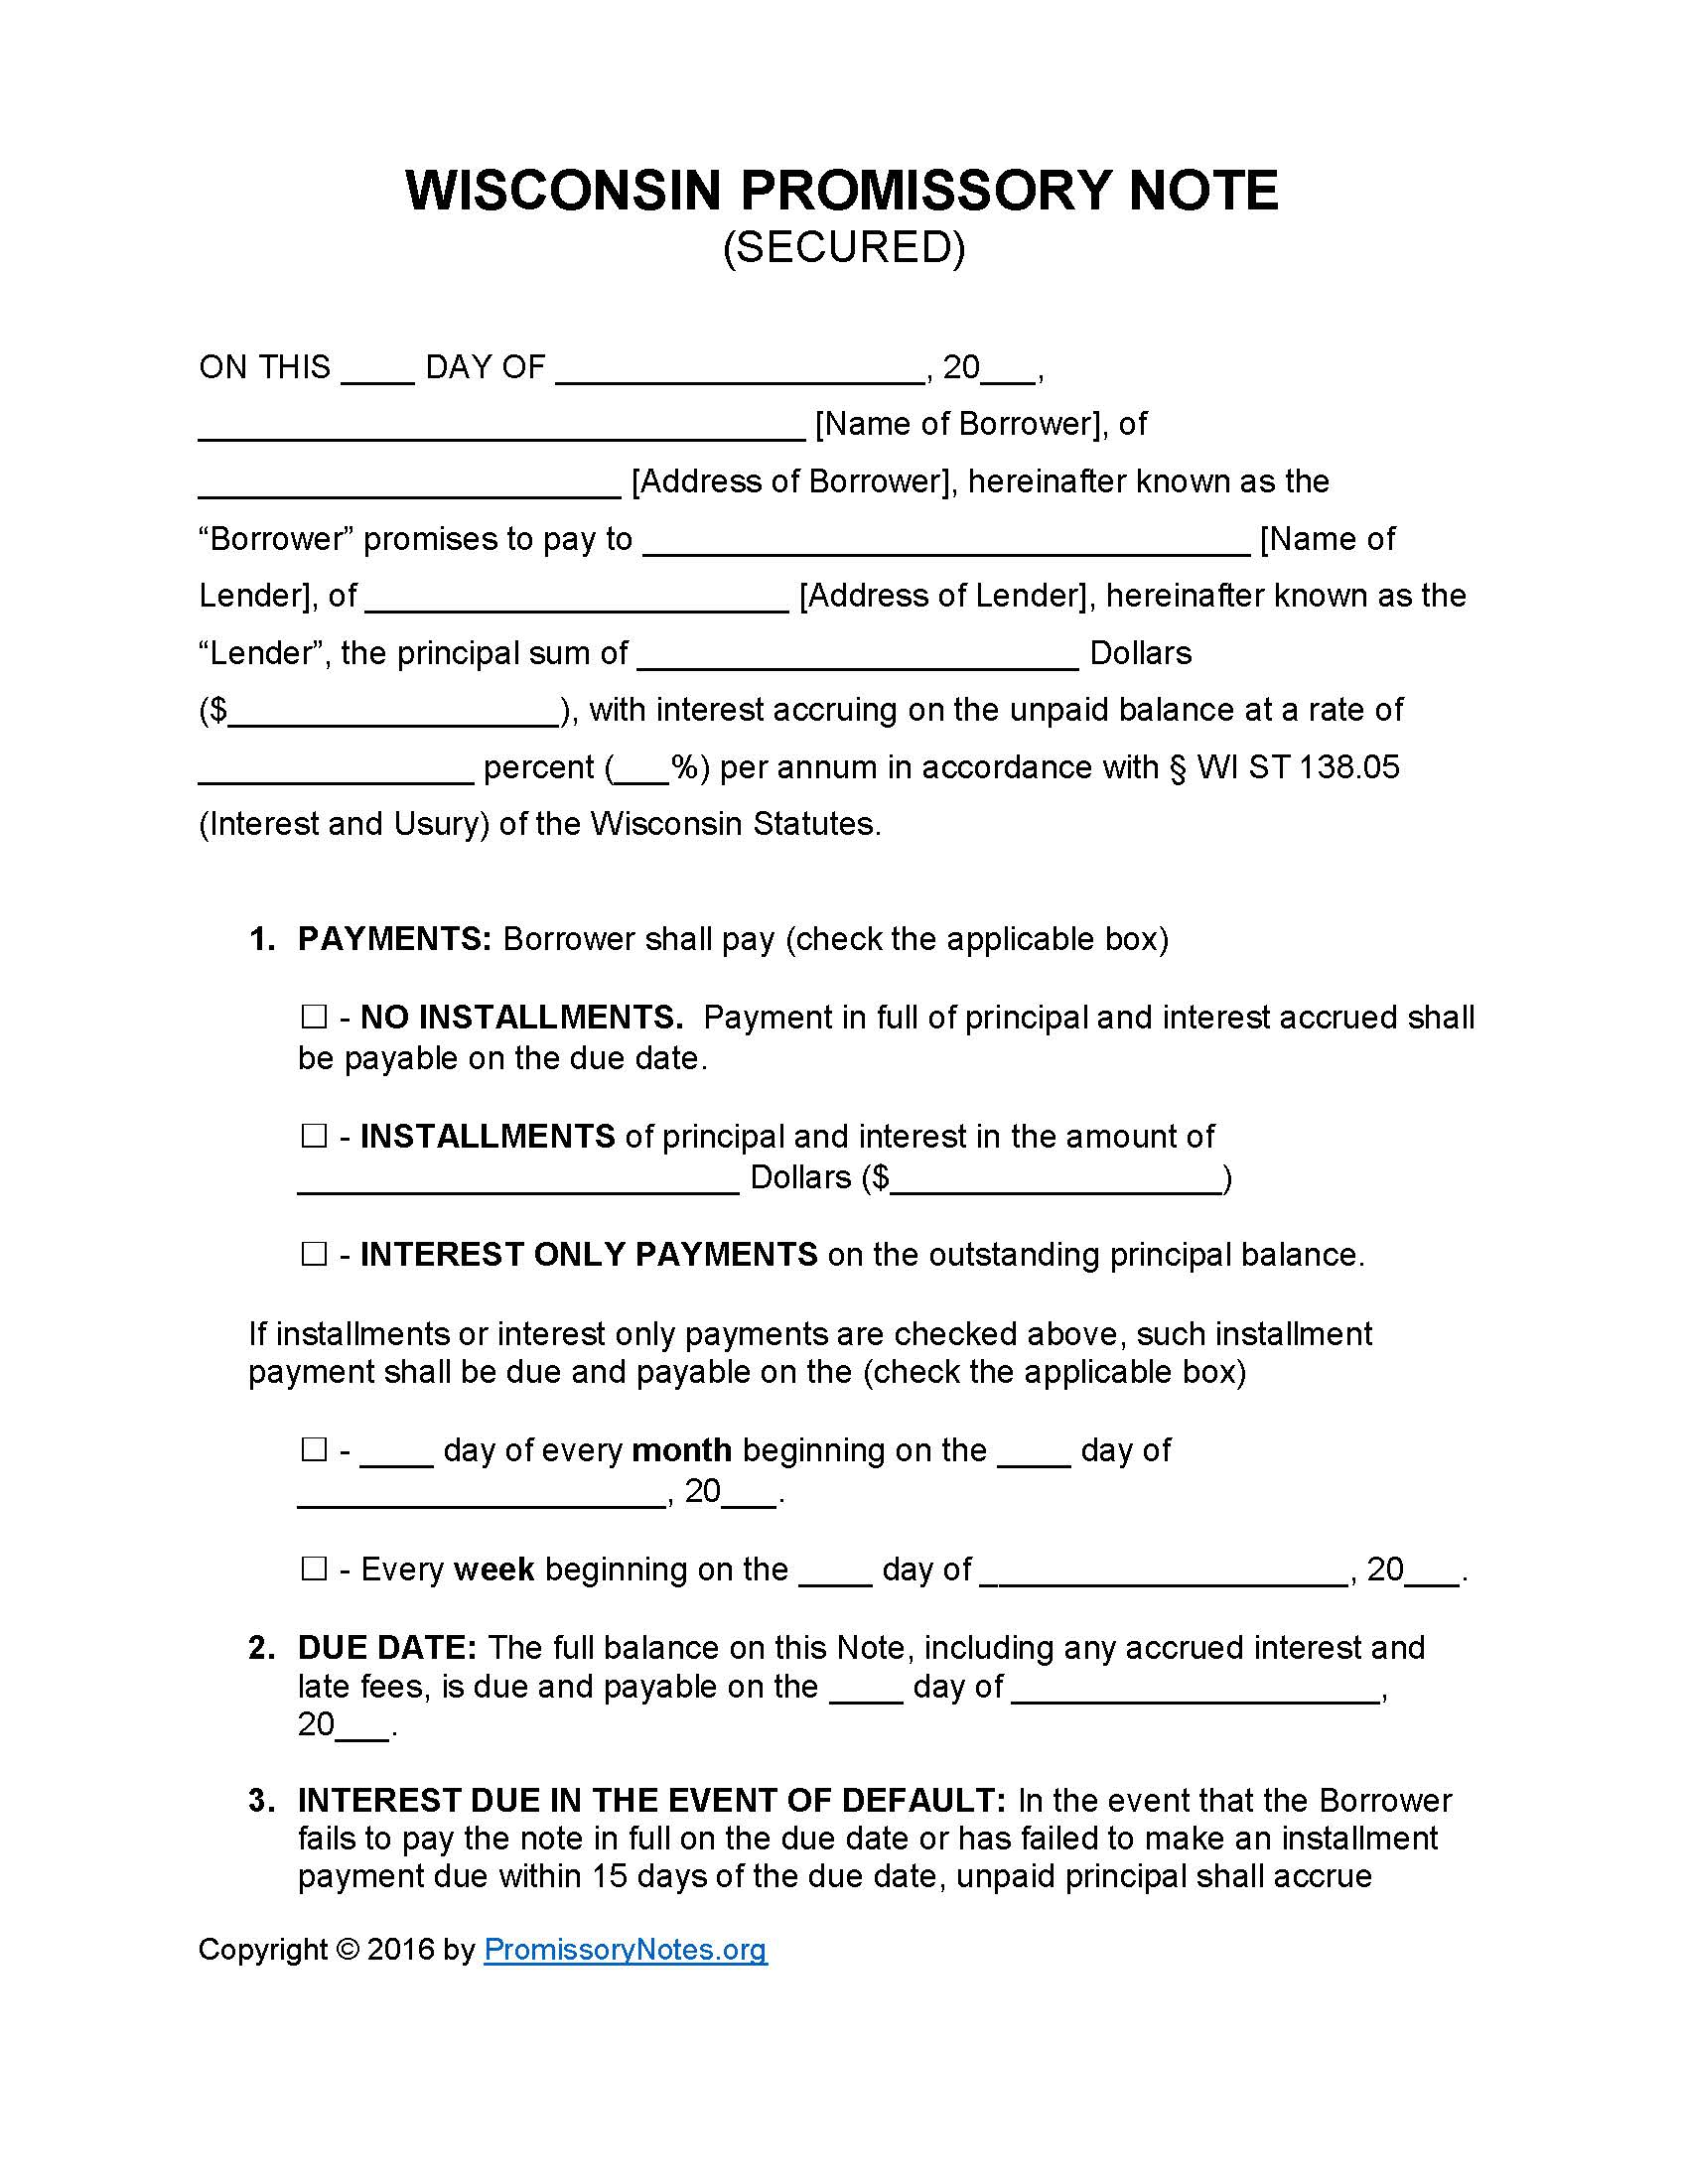 Wisconsin Secured Promissory Note Template Promissory